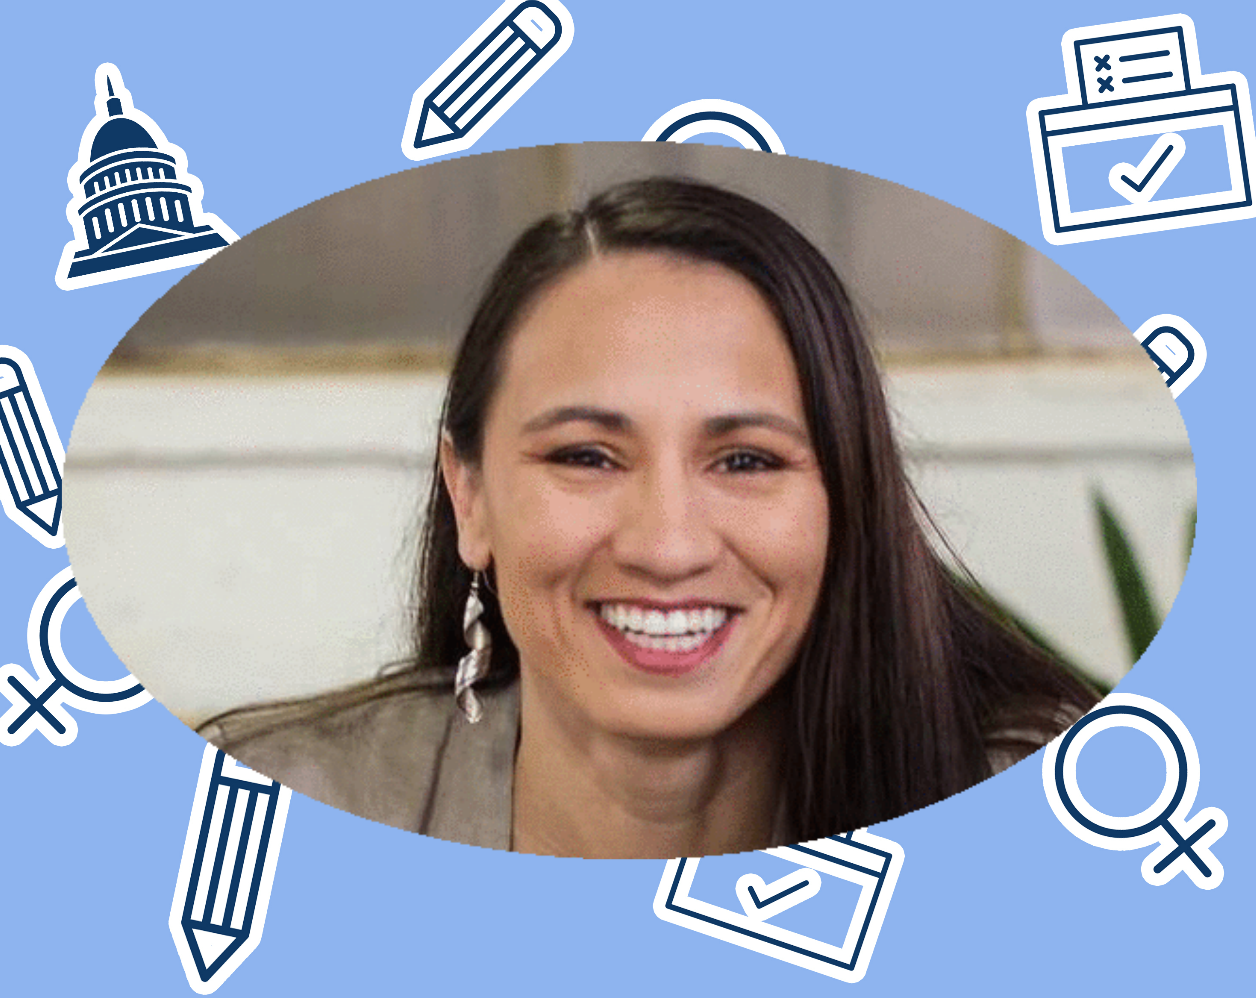 Sharice Davids could be the first Indigenous woman ever elected to Congress, and she's just the fighter we need in our corner